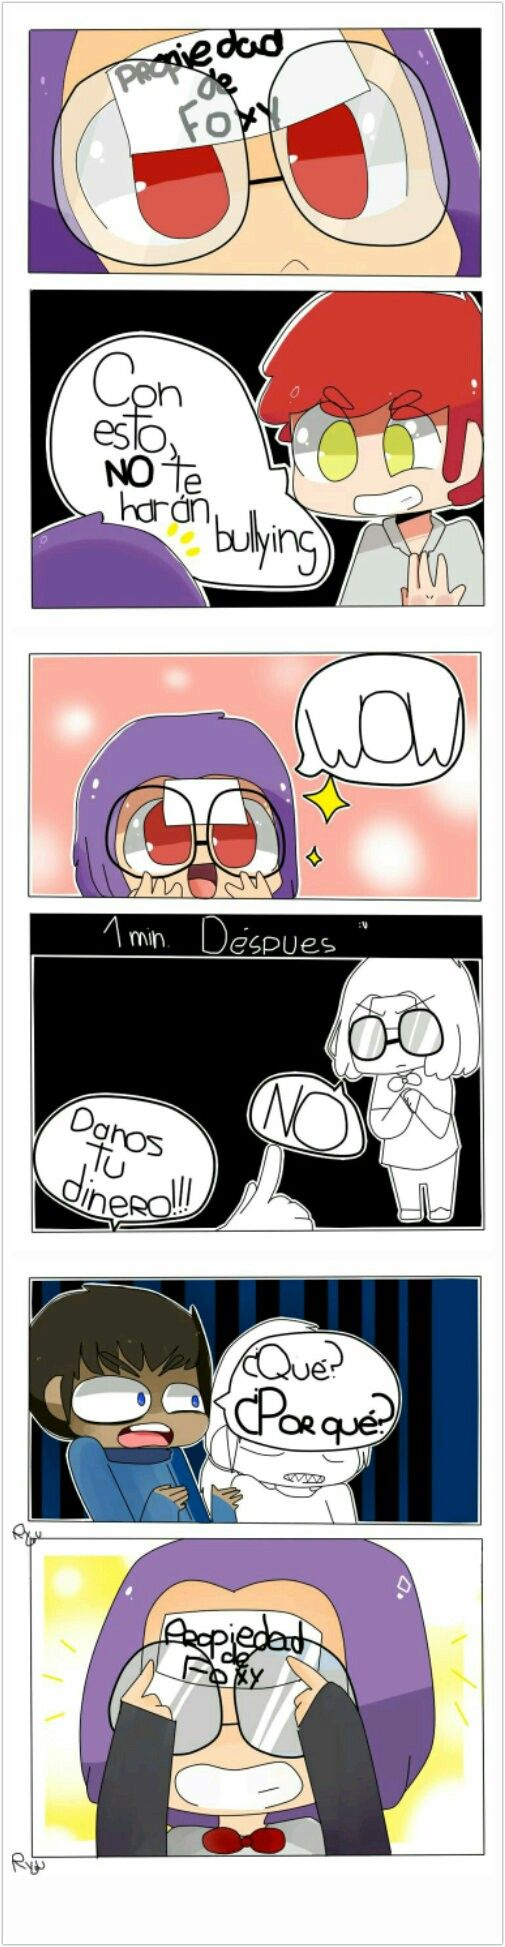 2do comic! Fnafhs! #Bonnie edit comix